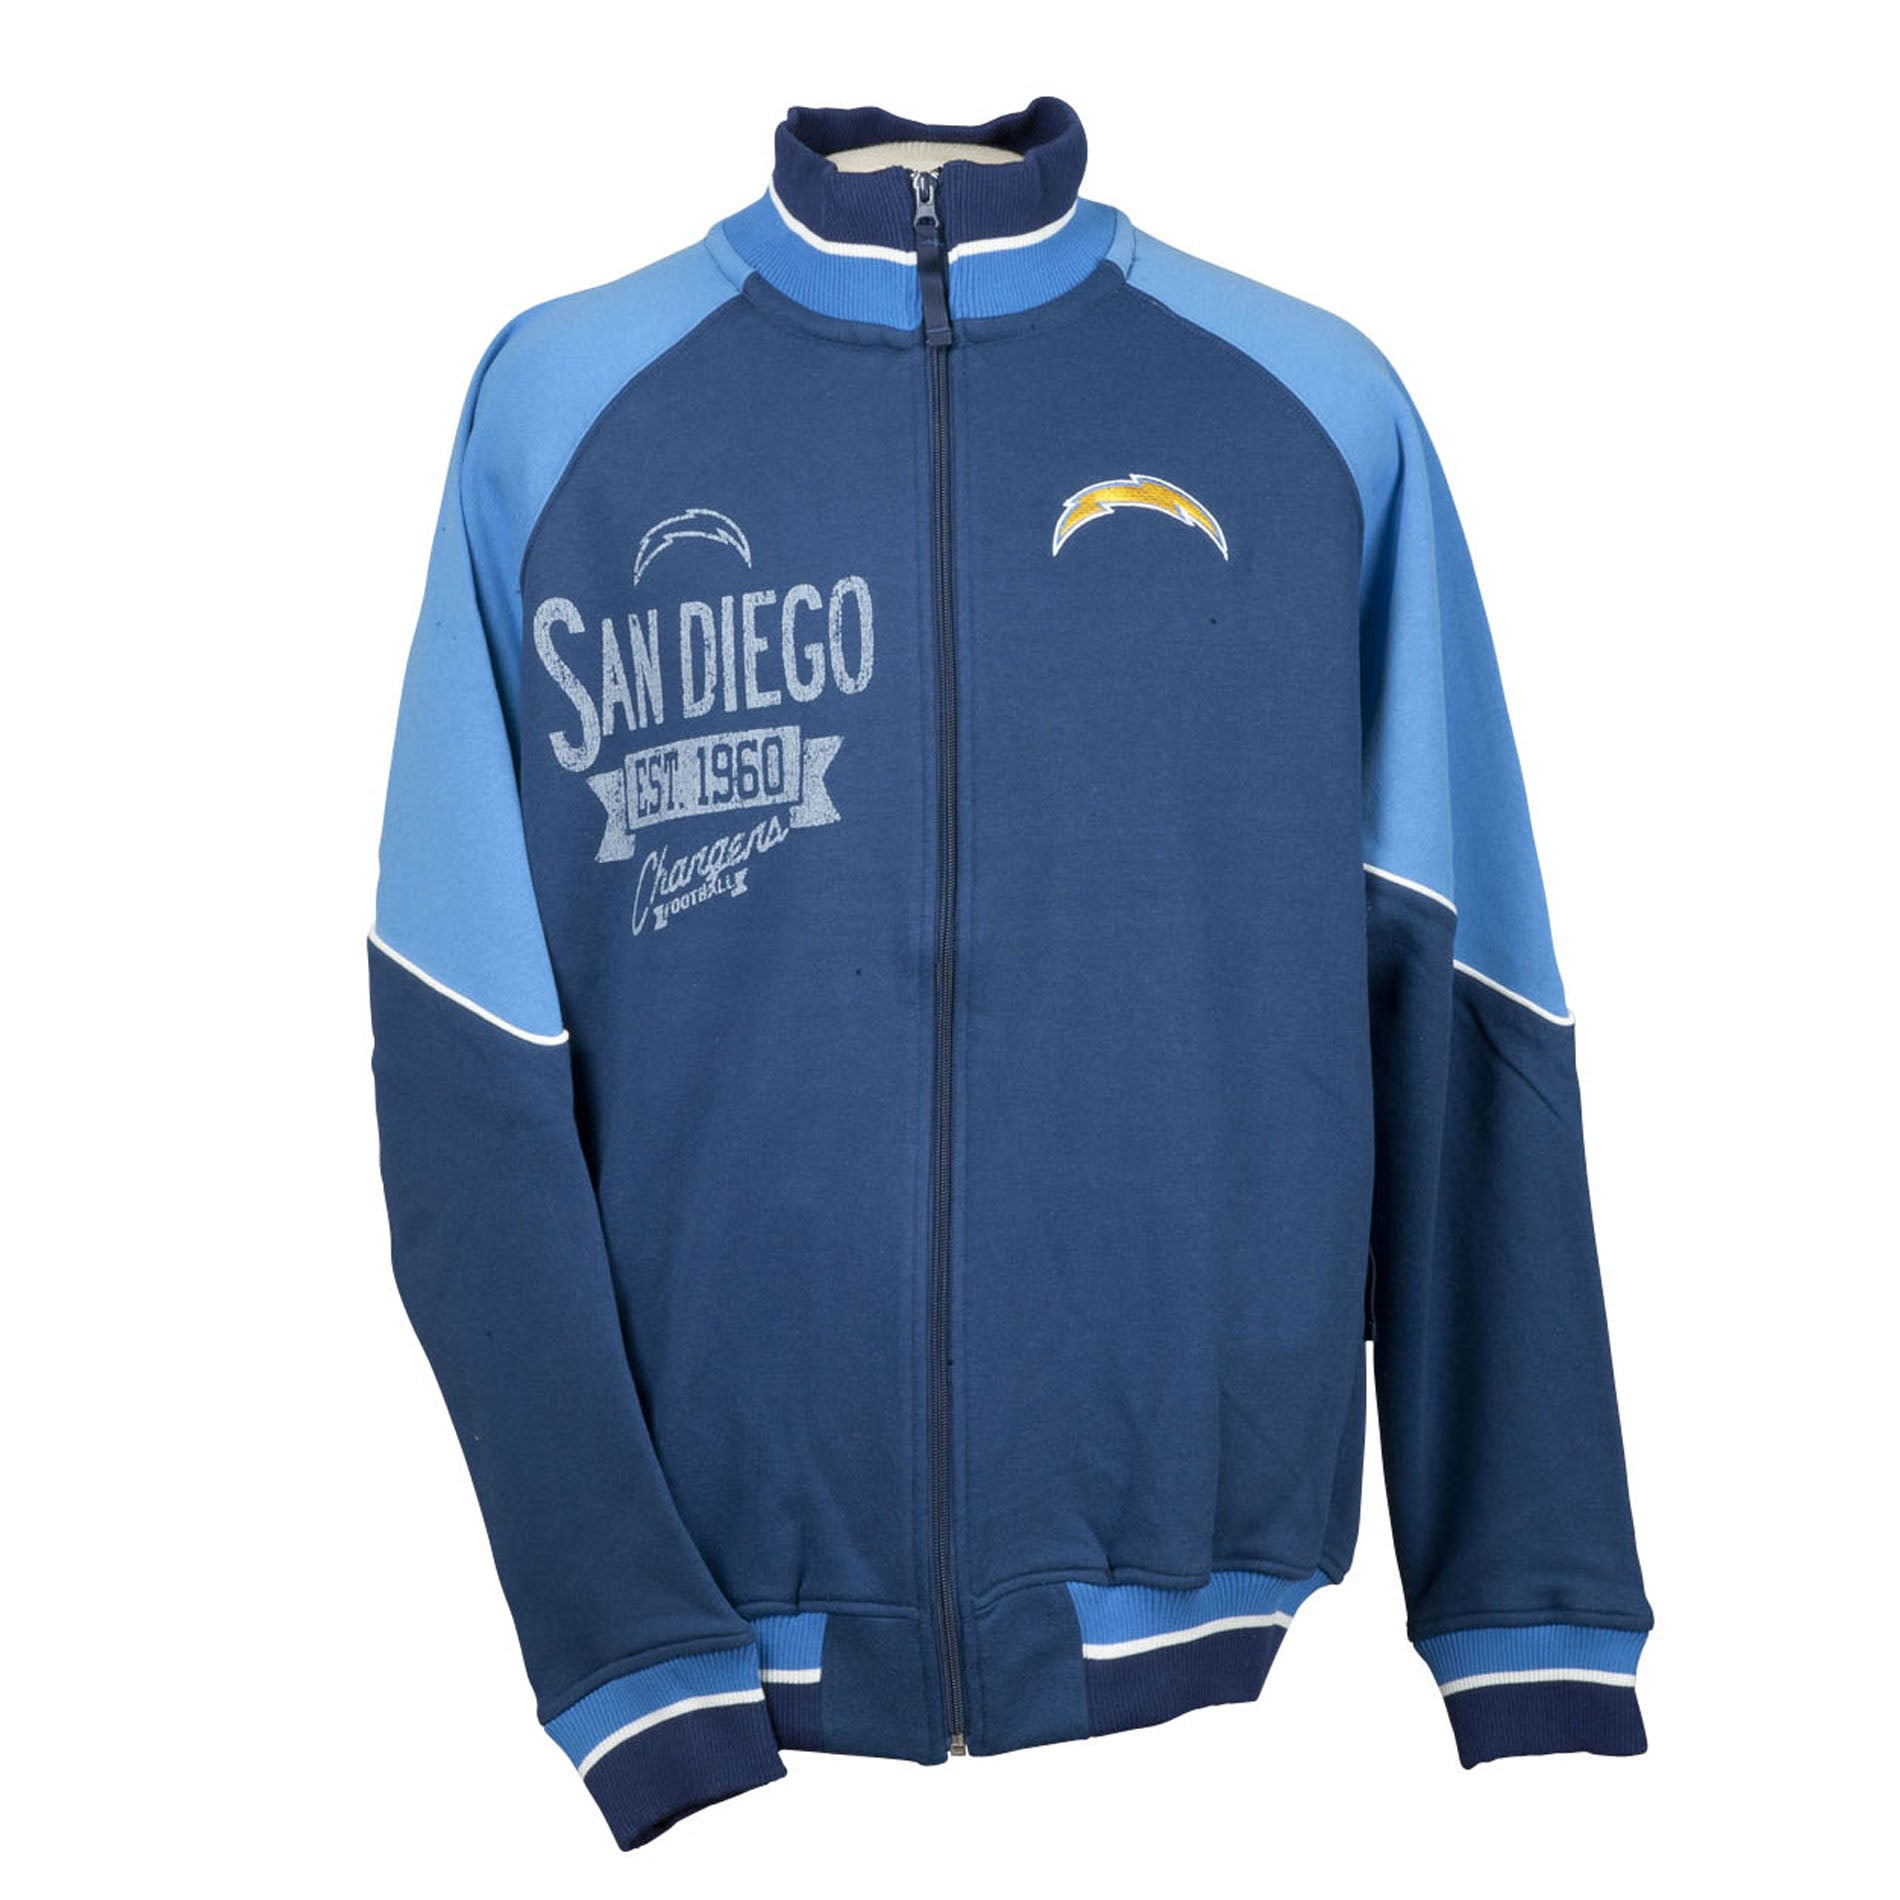 San Diego Chargers Full Zip Cotton Track Jacket